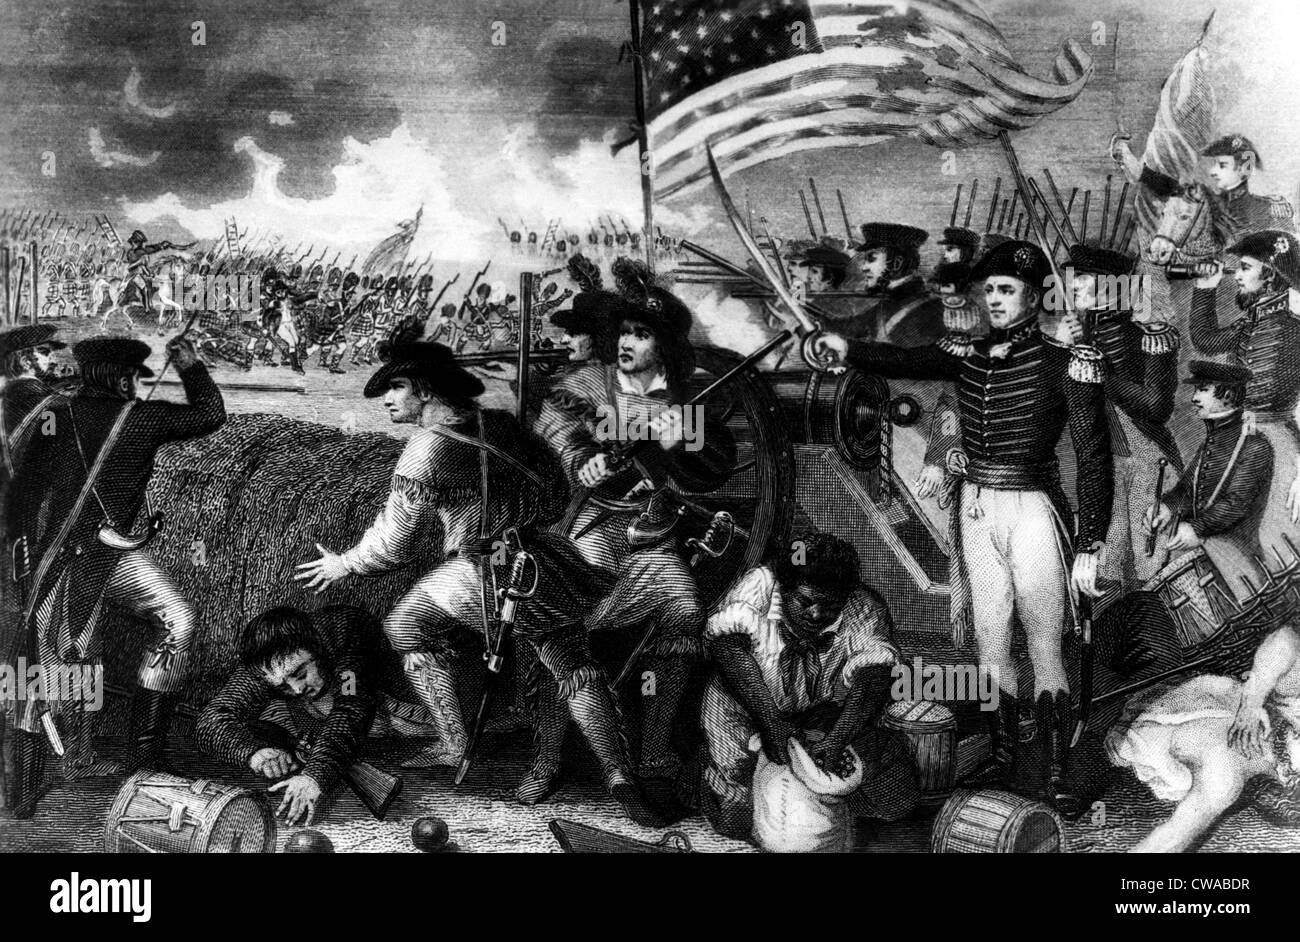 The Battle of New Orleans with Andrew Jackson at the barricade. ca. 1810s. Courtesy: CSU Archives/Everett Collection. - Stock Image